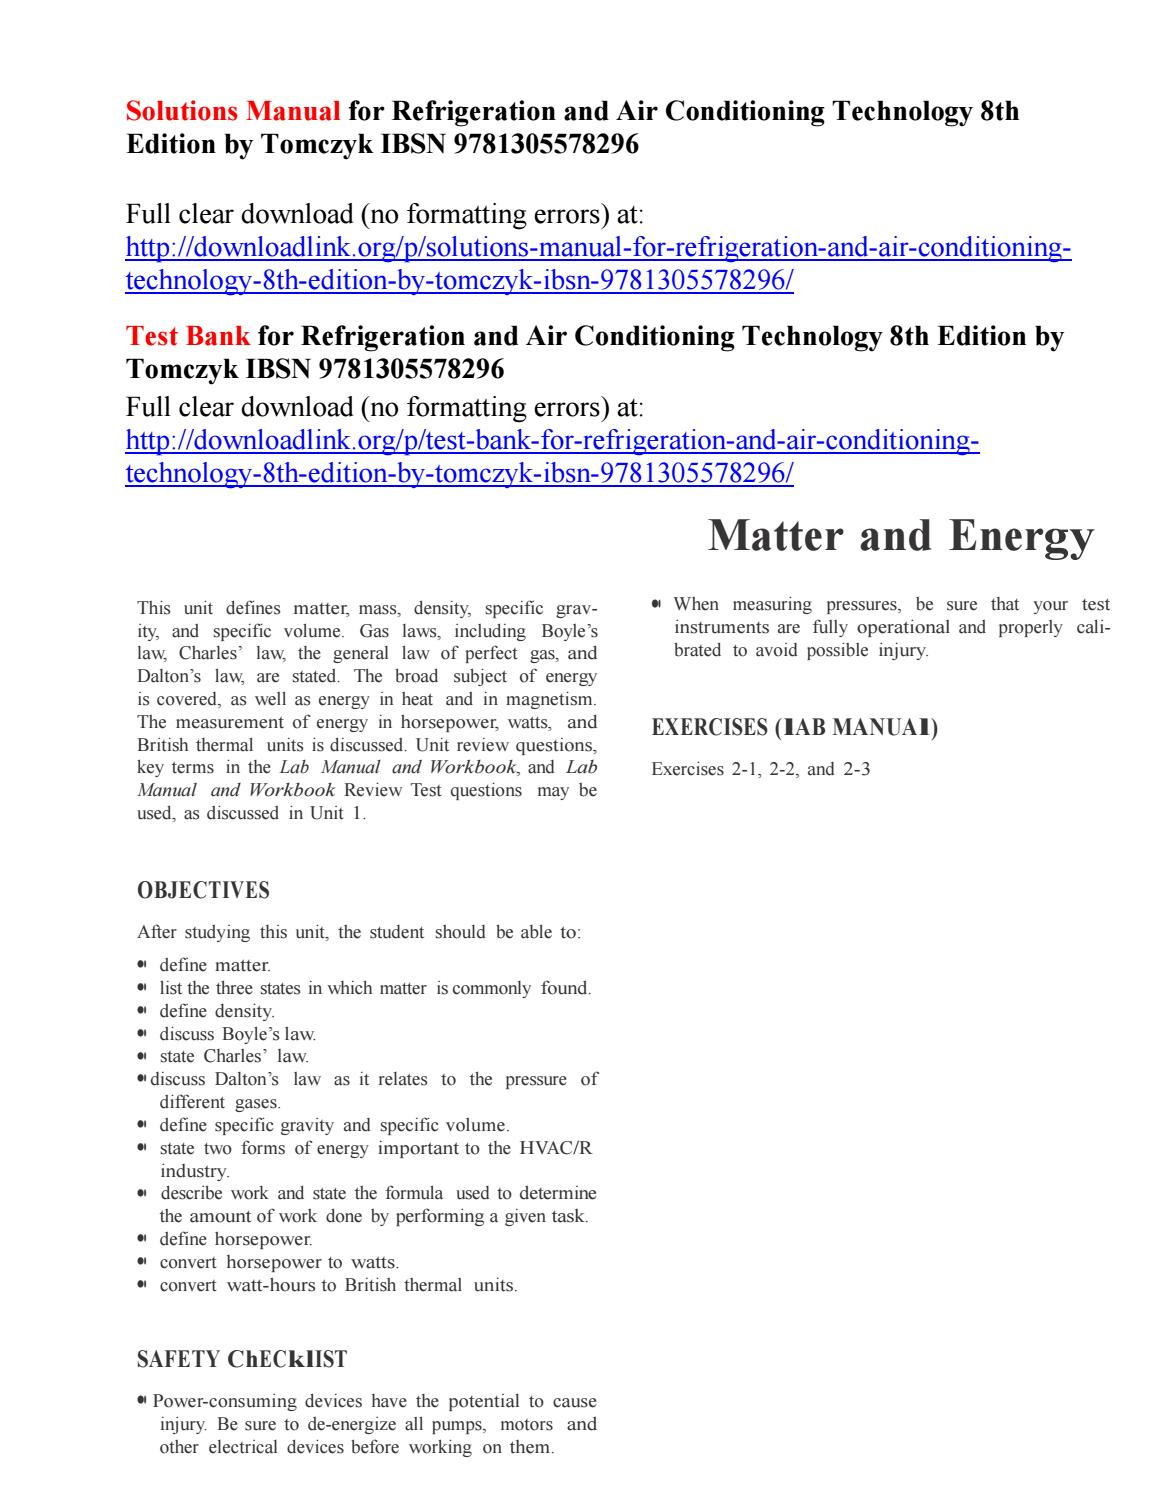 Solutions Manual For Refrigeration And Air Conditioning Technology 8th Edition By Tomczyk Ibsn 97813 By Twomey496 Issuu